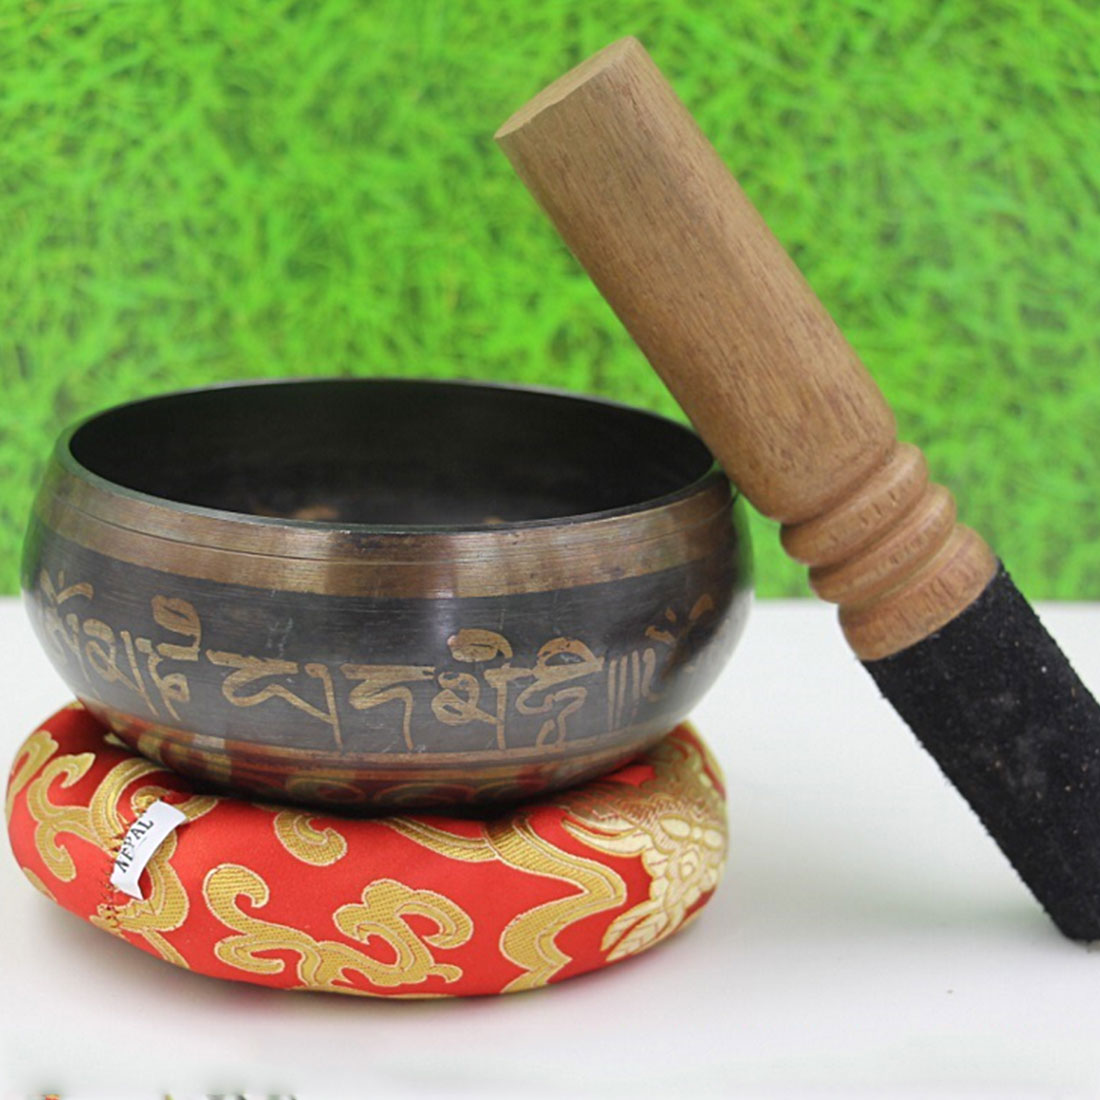 Hot Decorative Wall Dishes Tibetan Singing Bowl  Singing Bowl Decorative-wall-dishes Home Decoration Tibetan Bowl